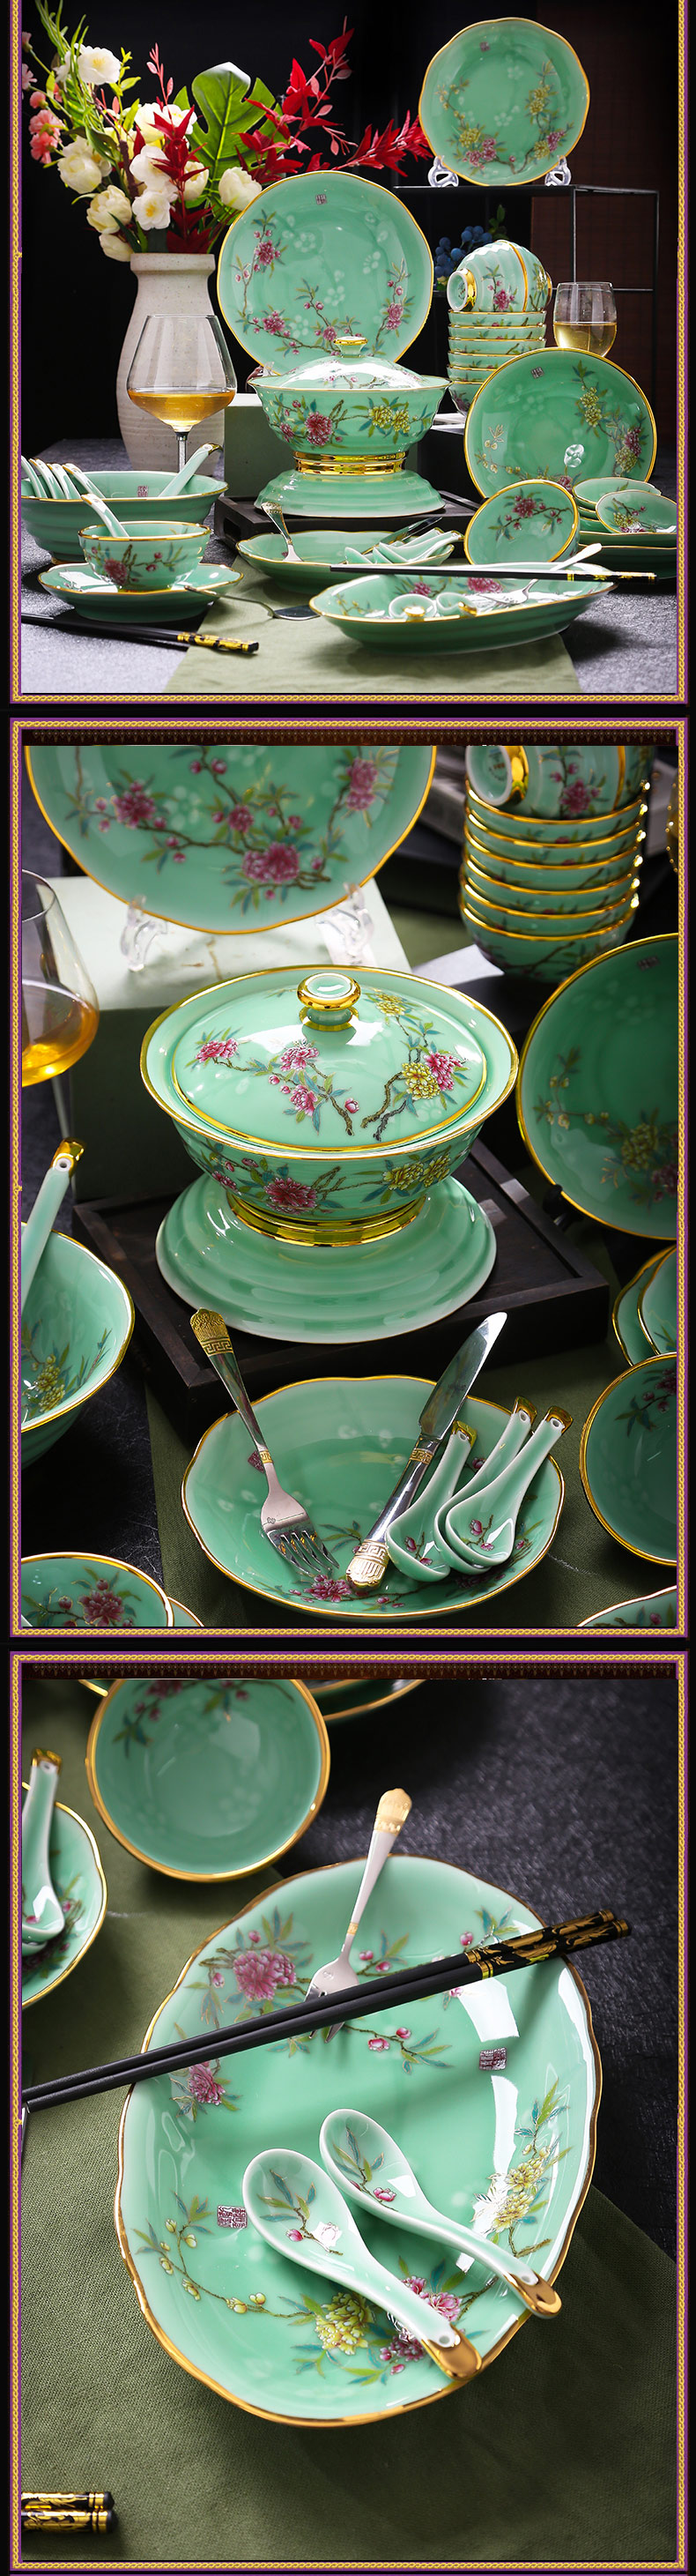 Jingdezhen Jingdezhen celadon tableware suit household of Chinese style up phnom penh dishes combine high - end dishes the icing on the cake